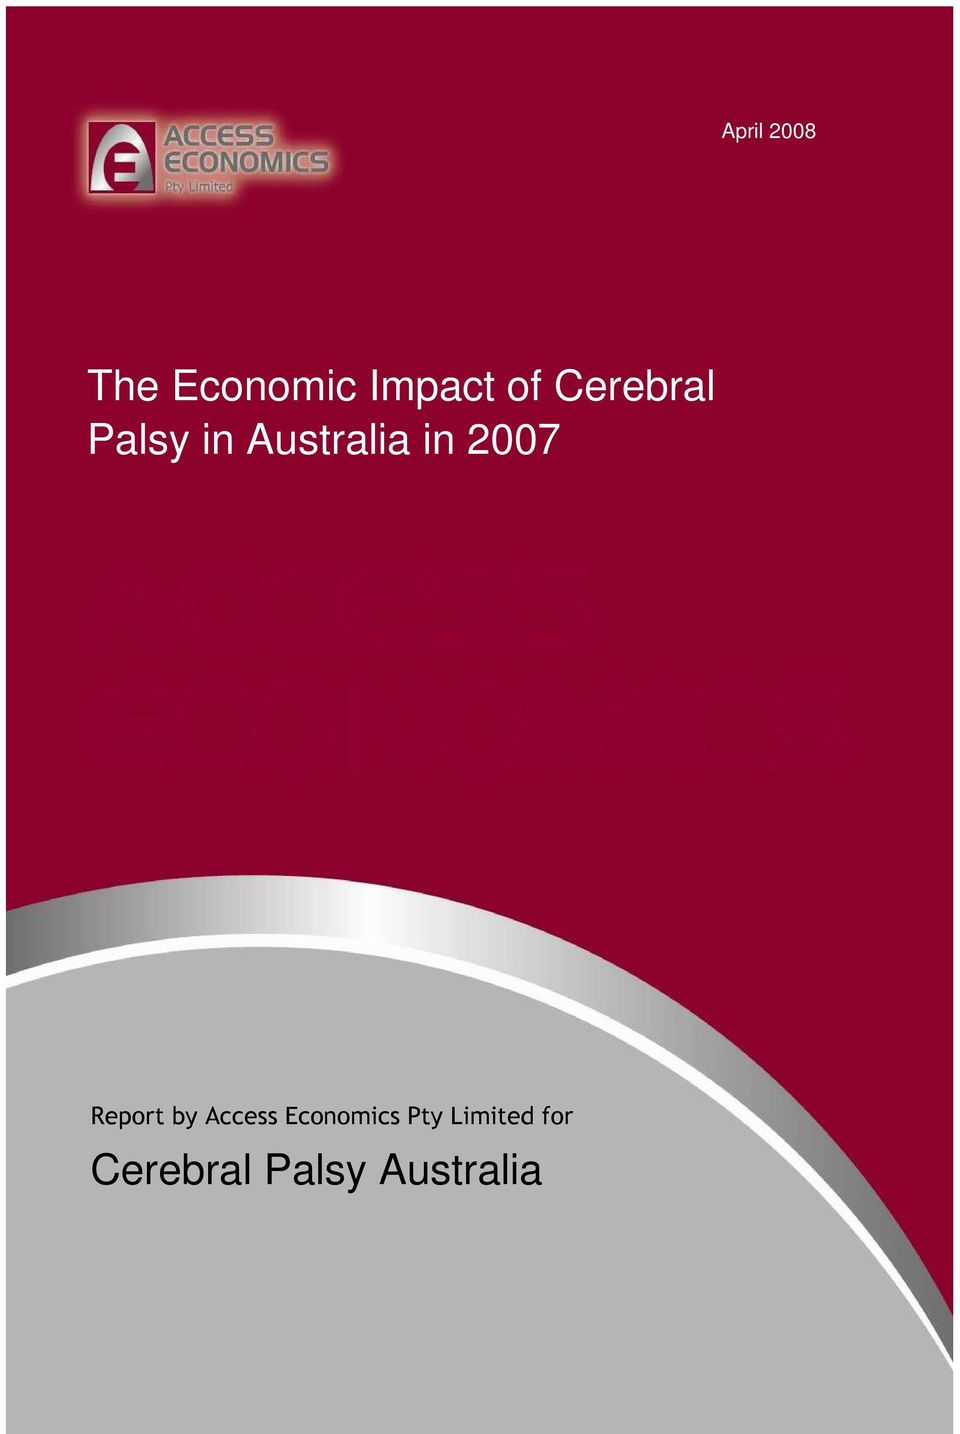 2007 Report by Access Economics